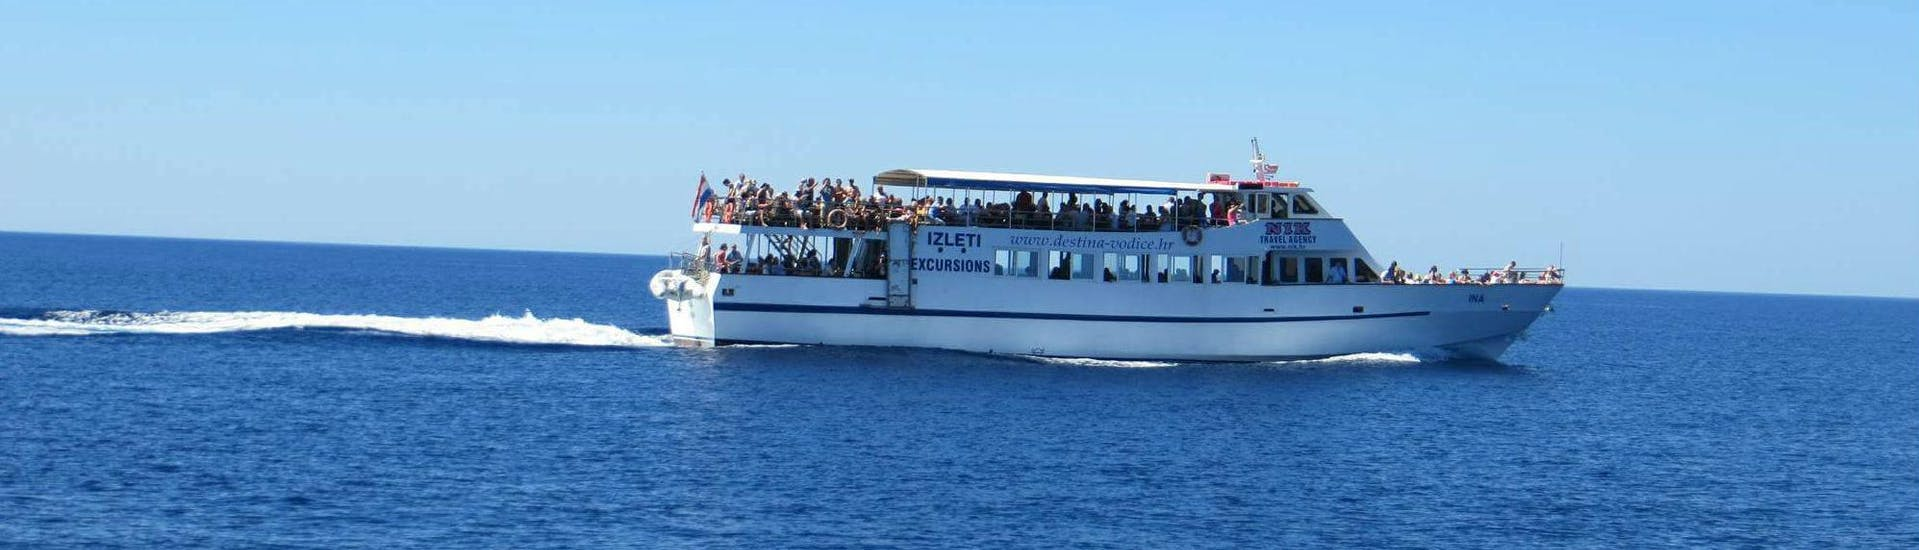 Boat Trip to Krka National Park with Destina Boat Excursions Vodice - Hero image